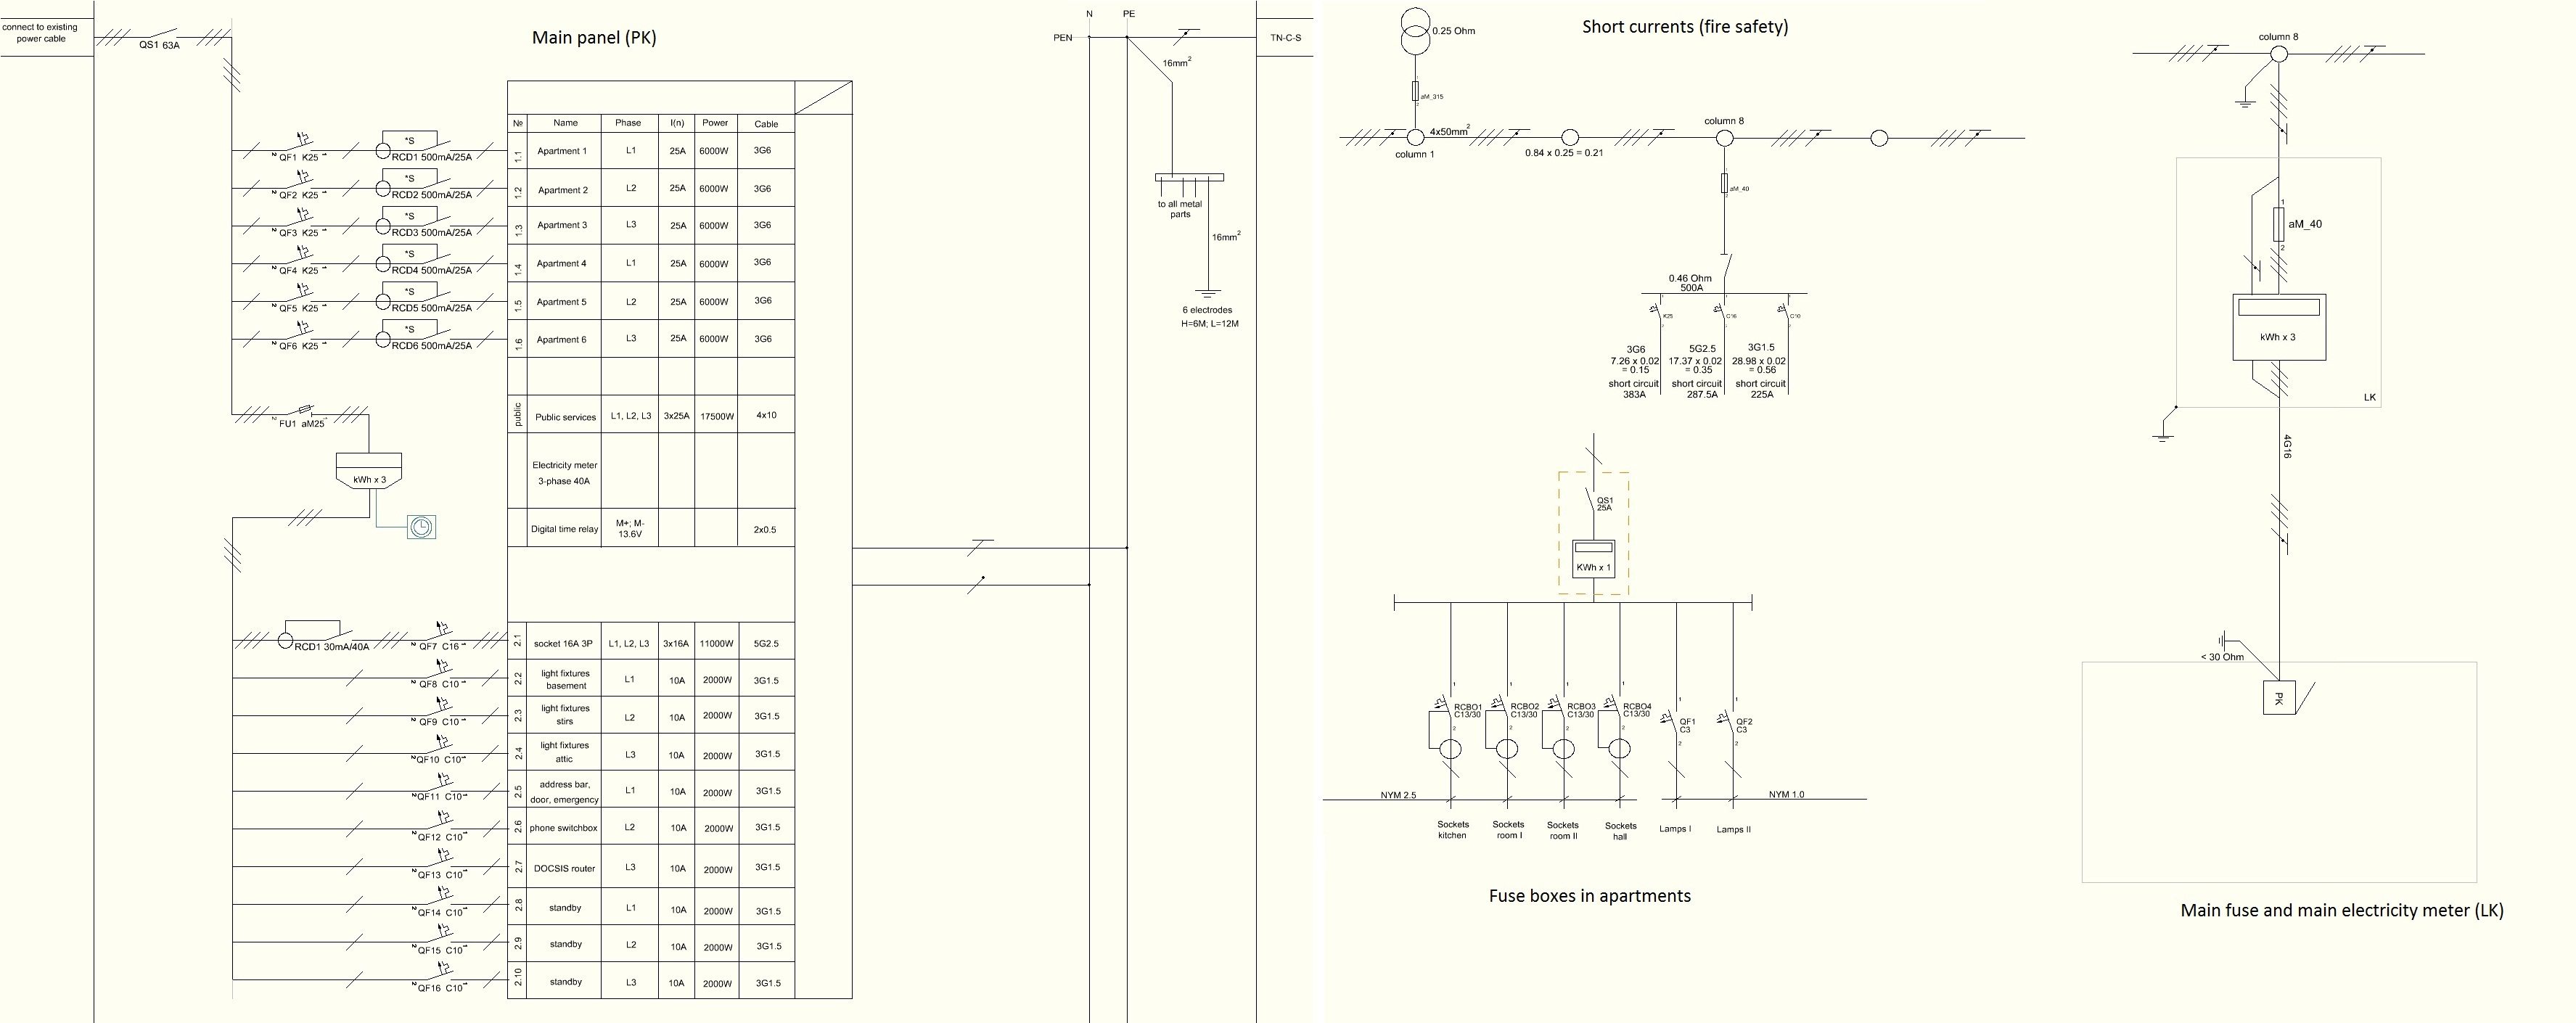 rewiring a house diagram 2010 toyota prius parts central processing unit block imageresizertool com